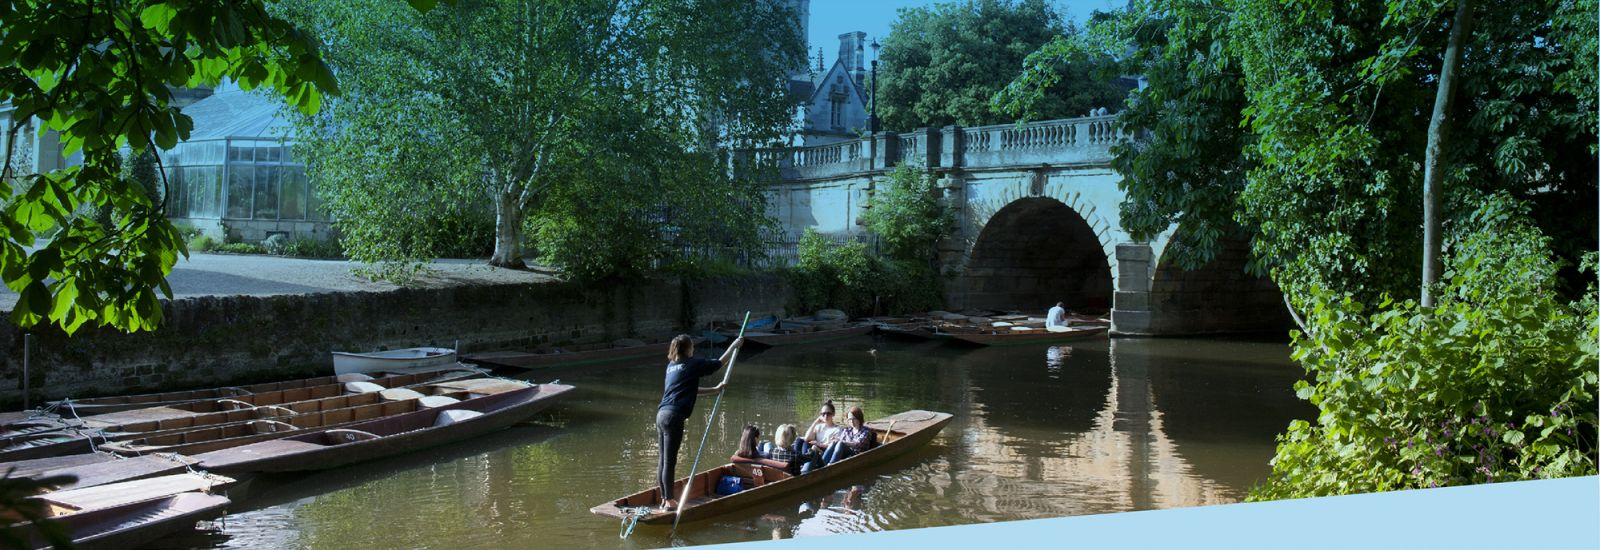 A group of punts moored and one being punted down the Cherwell River next to the Botanic Garden